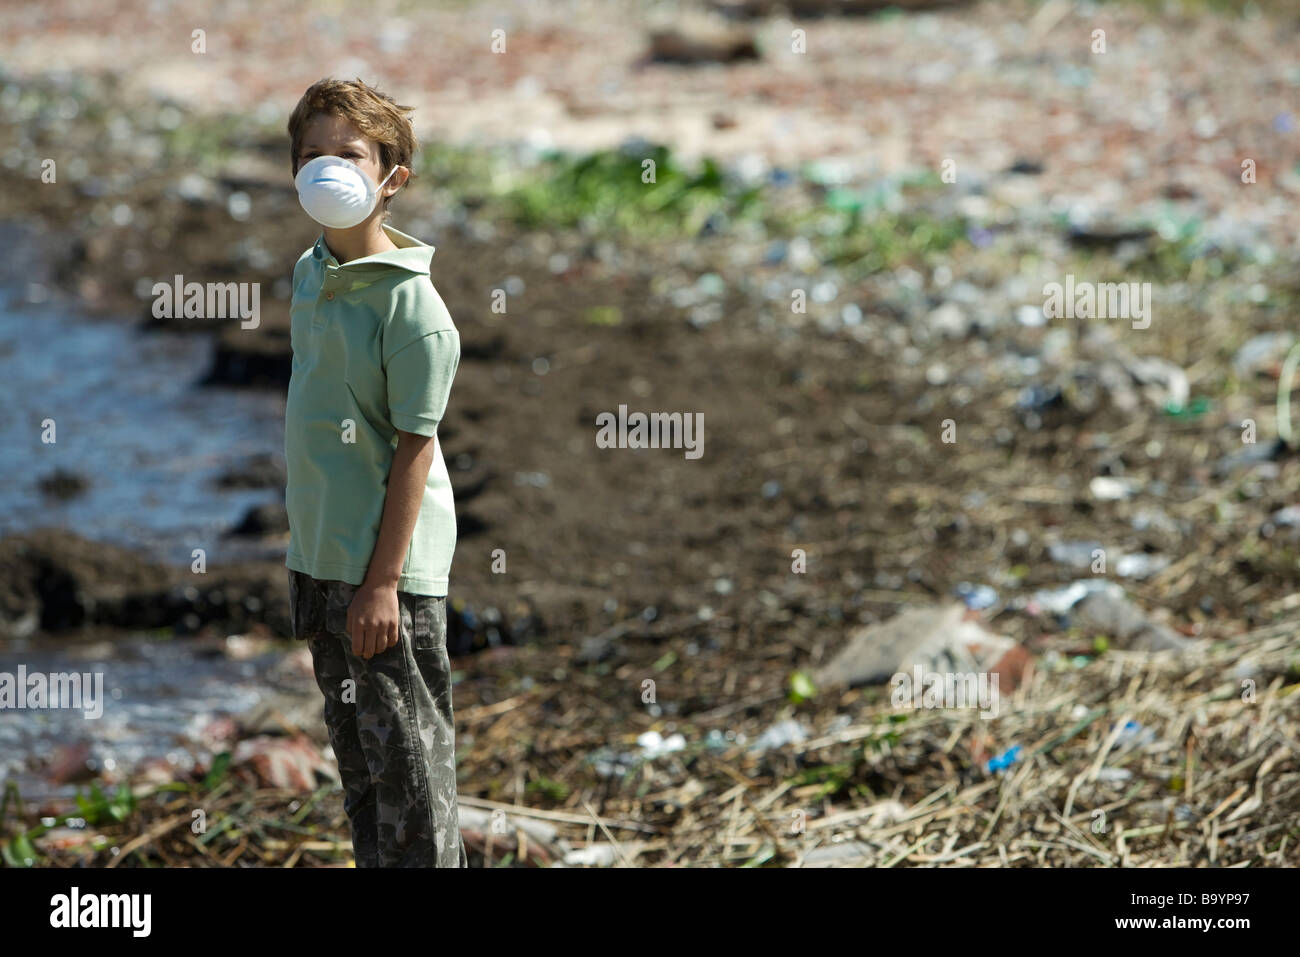 Boy standing on polluted shore, wearing pollution mask - Stock Image